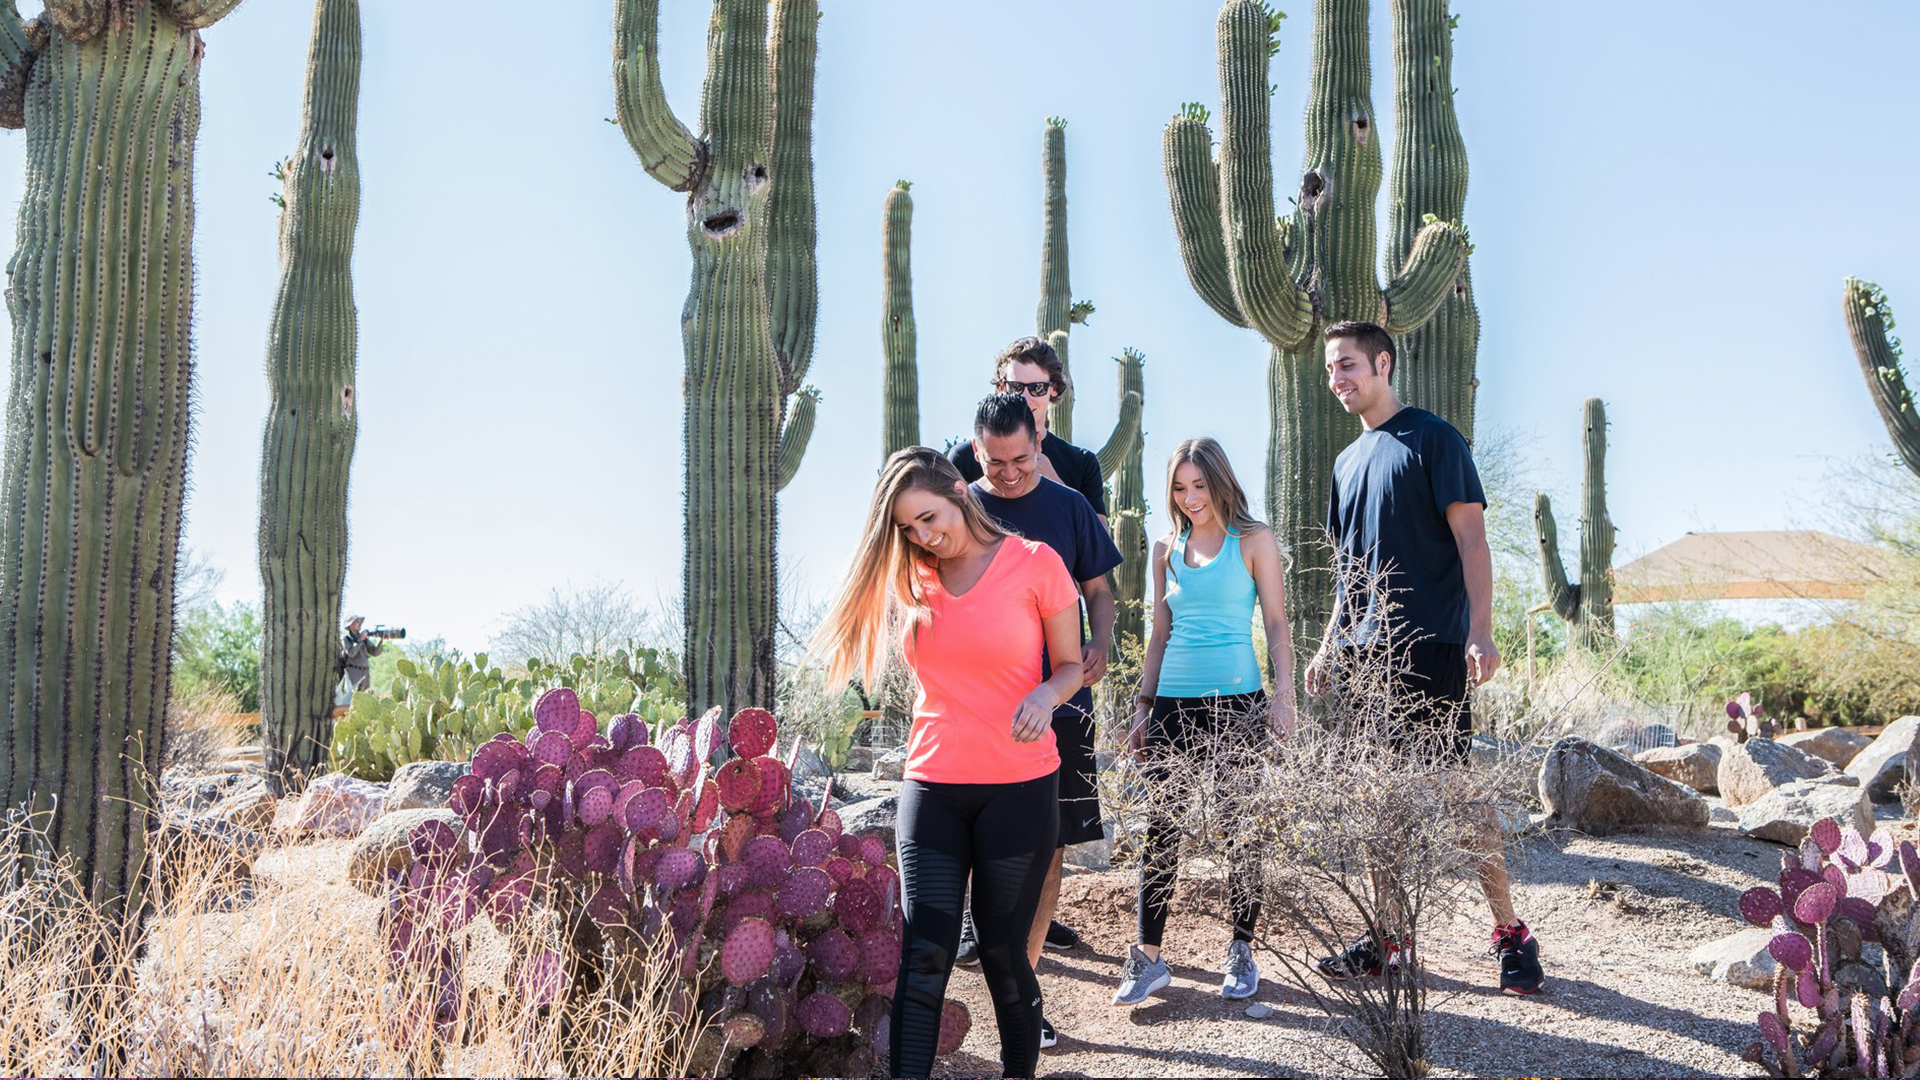 Hikers stay on the trail and leave no trace in Gilbert Arizona